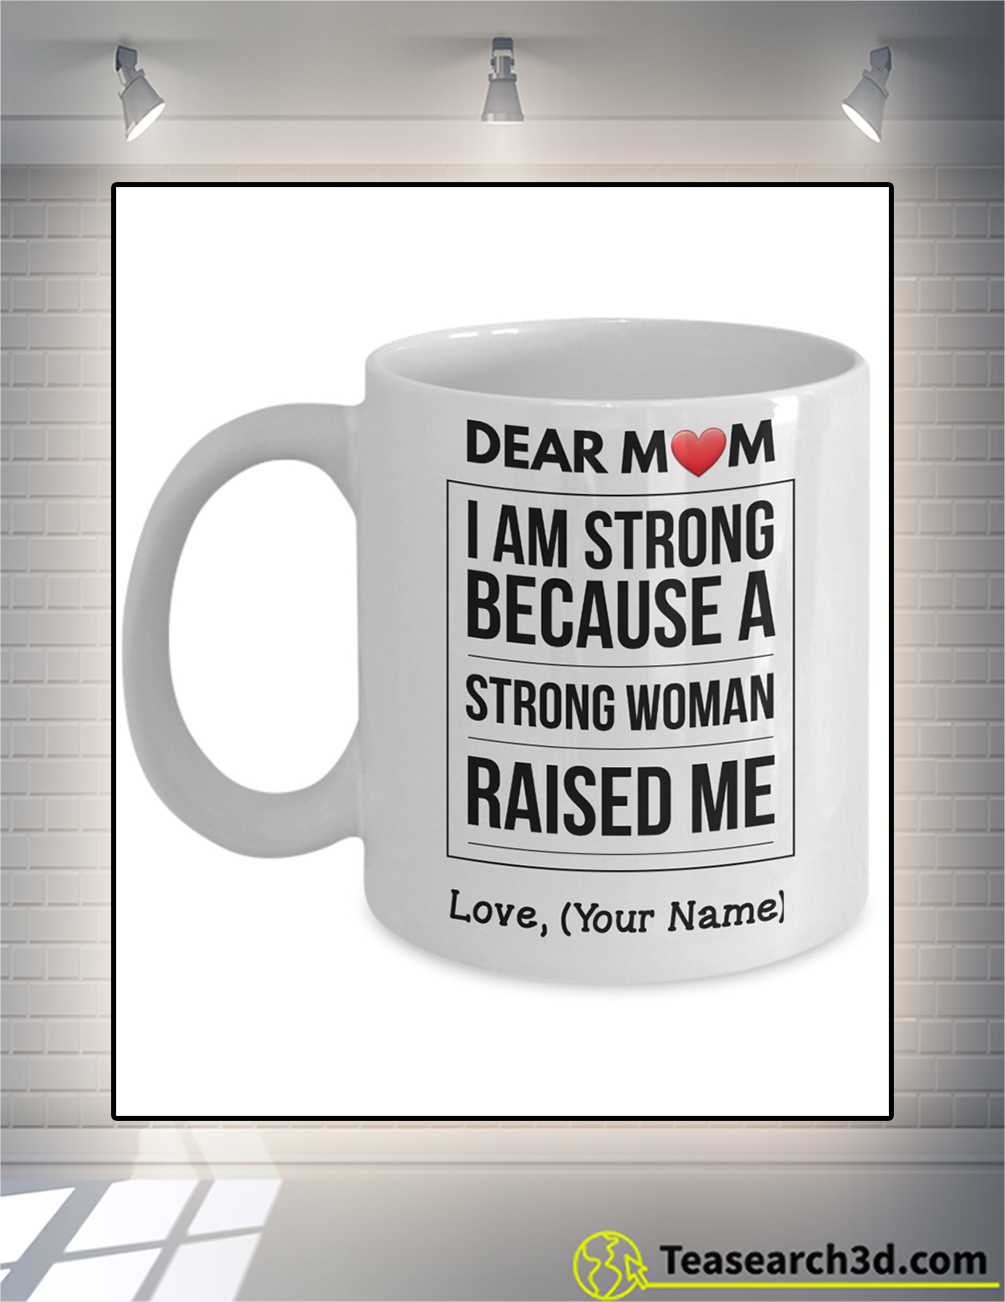 Personalized dear mom I am strong because a strong woman raised me mug